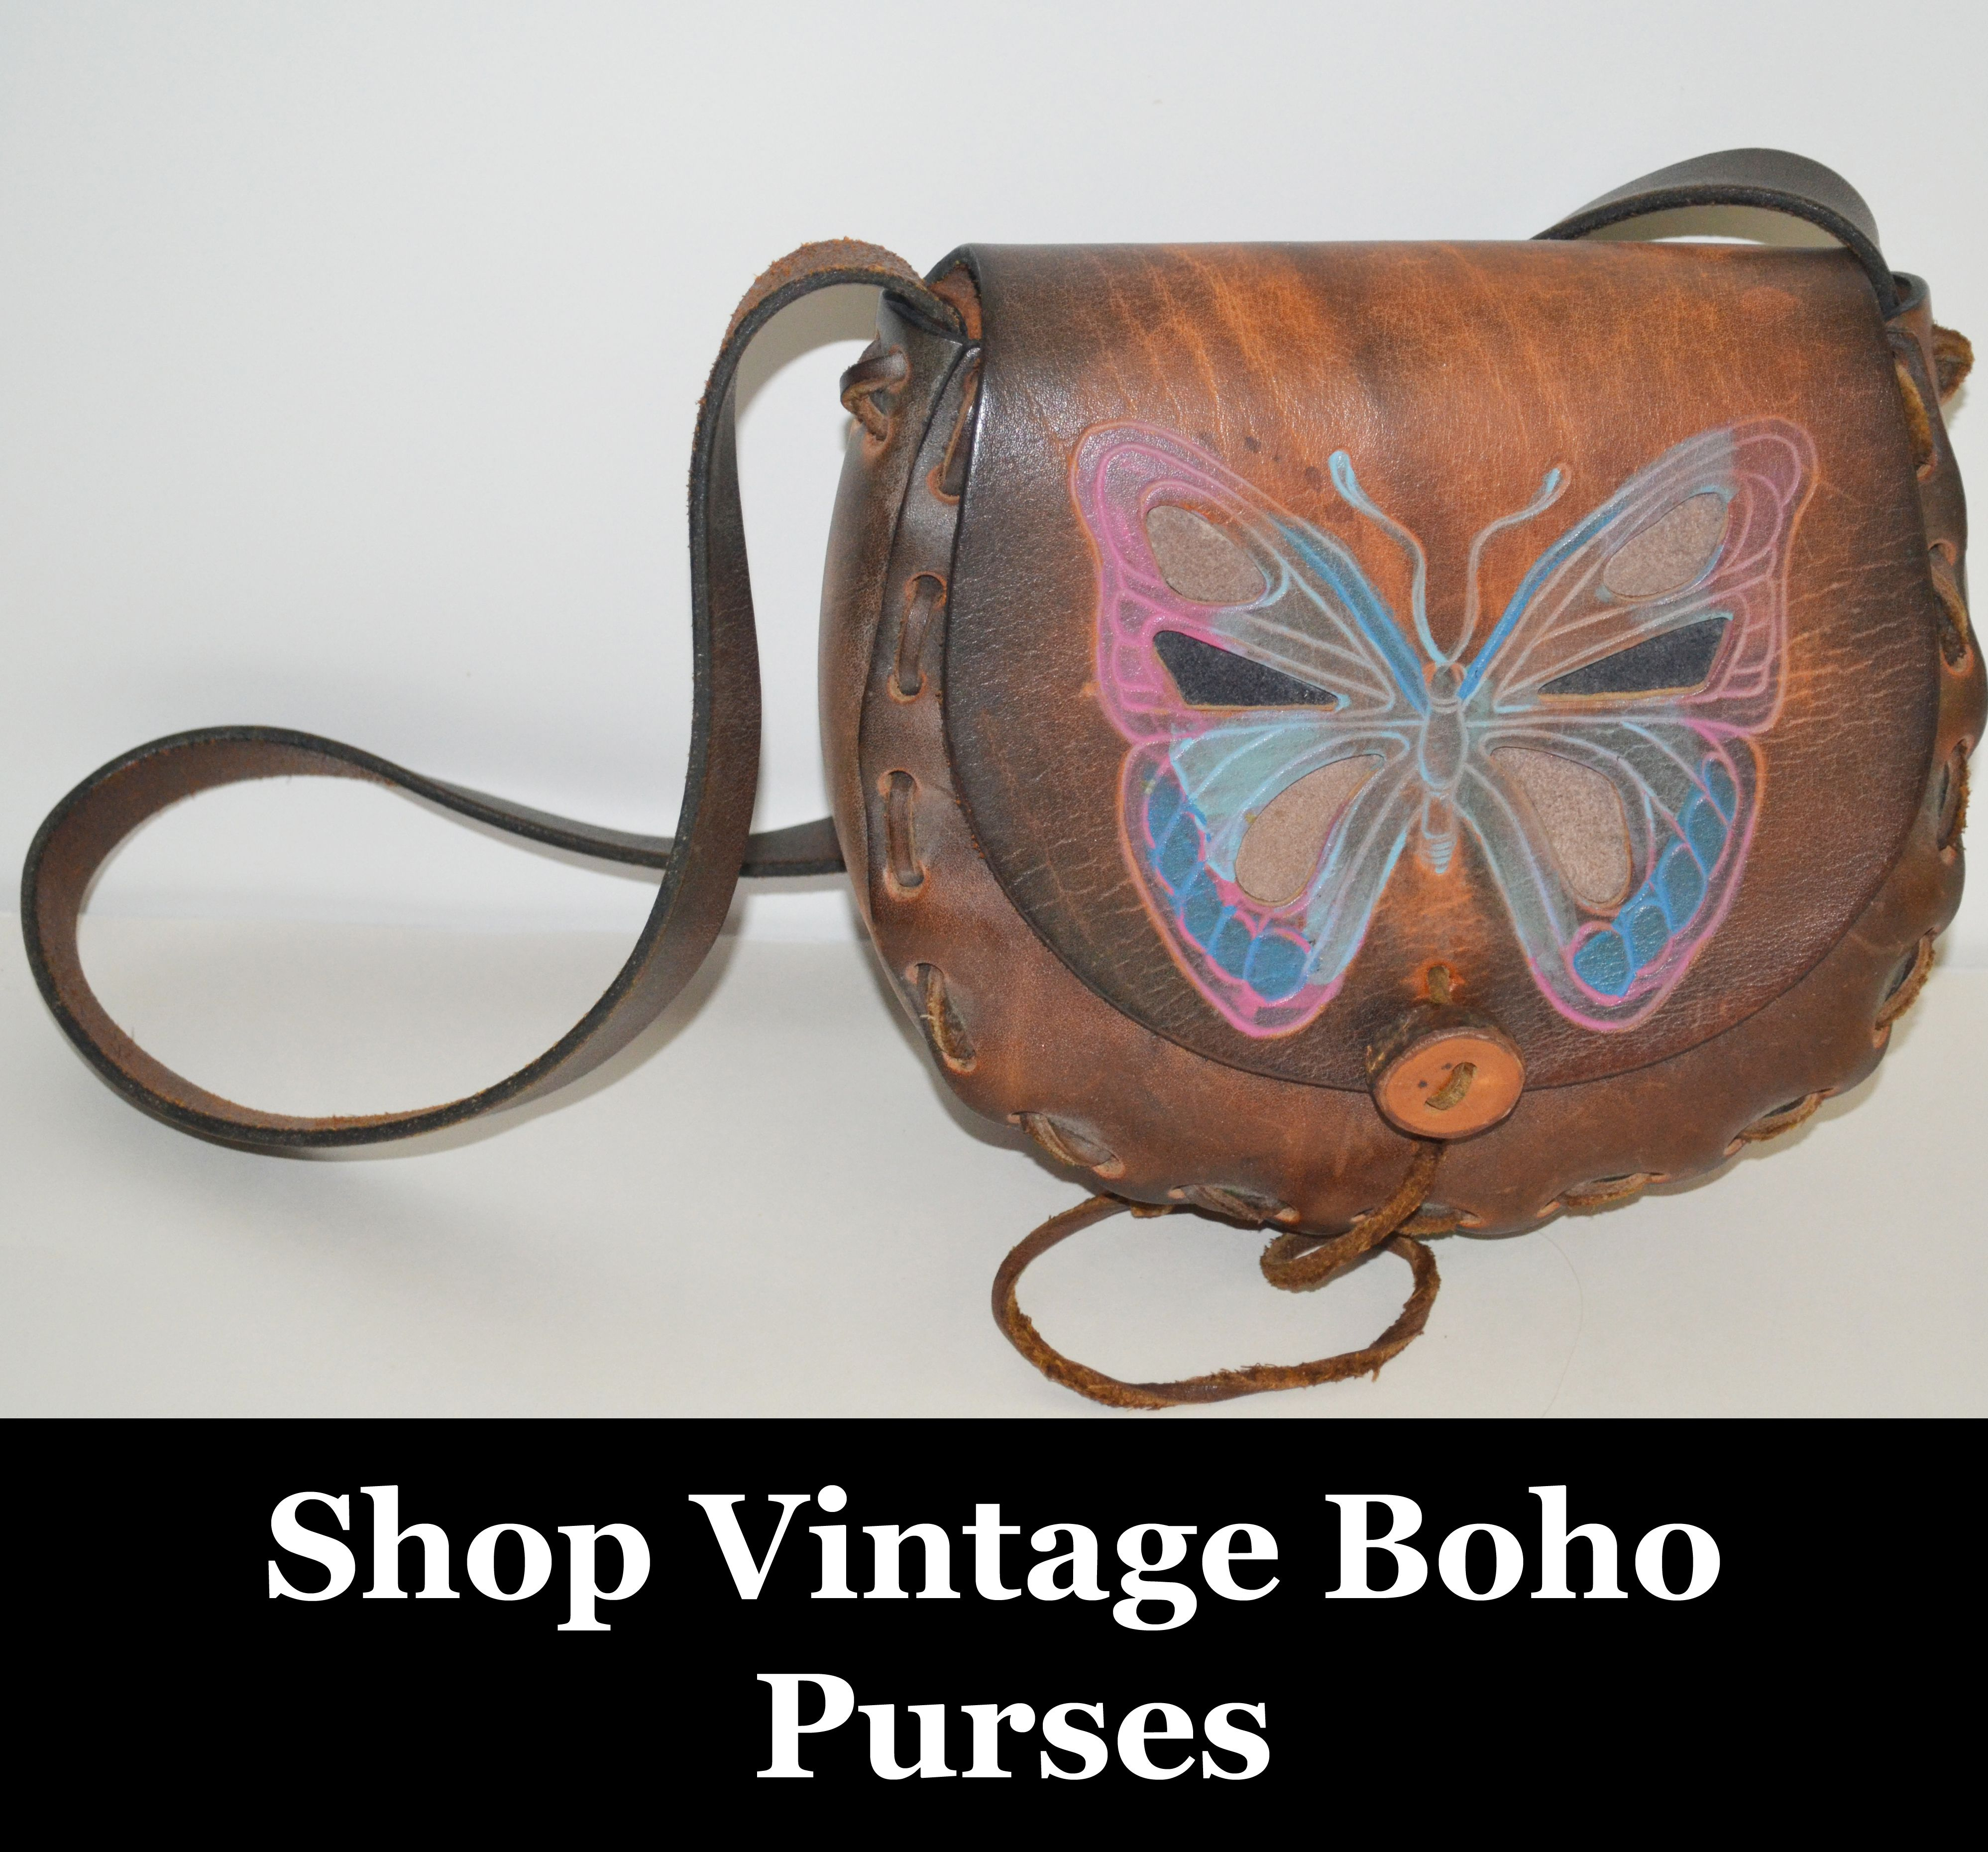 Add a bit of throwback flair to your wardrobe with a unique vintage clutch or handbag.  Shop the largest collection of affordable vintage handbags, purses, and clutches and standout from the crowd.